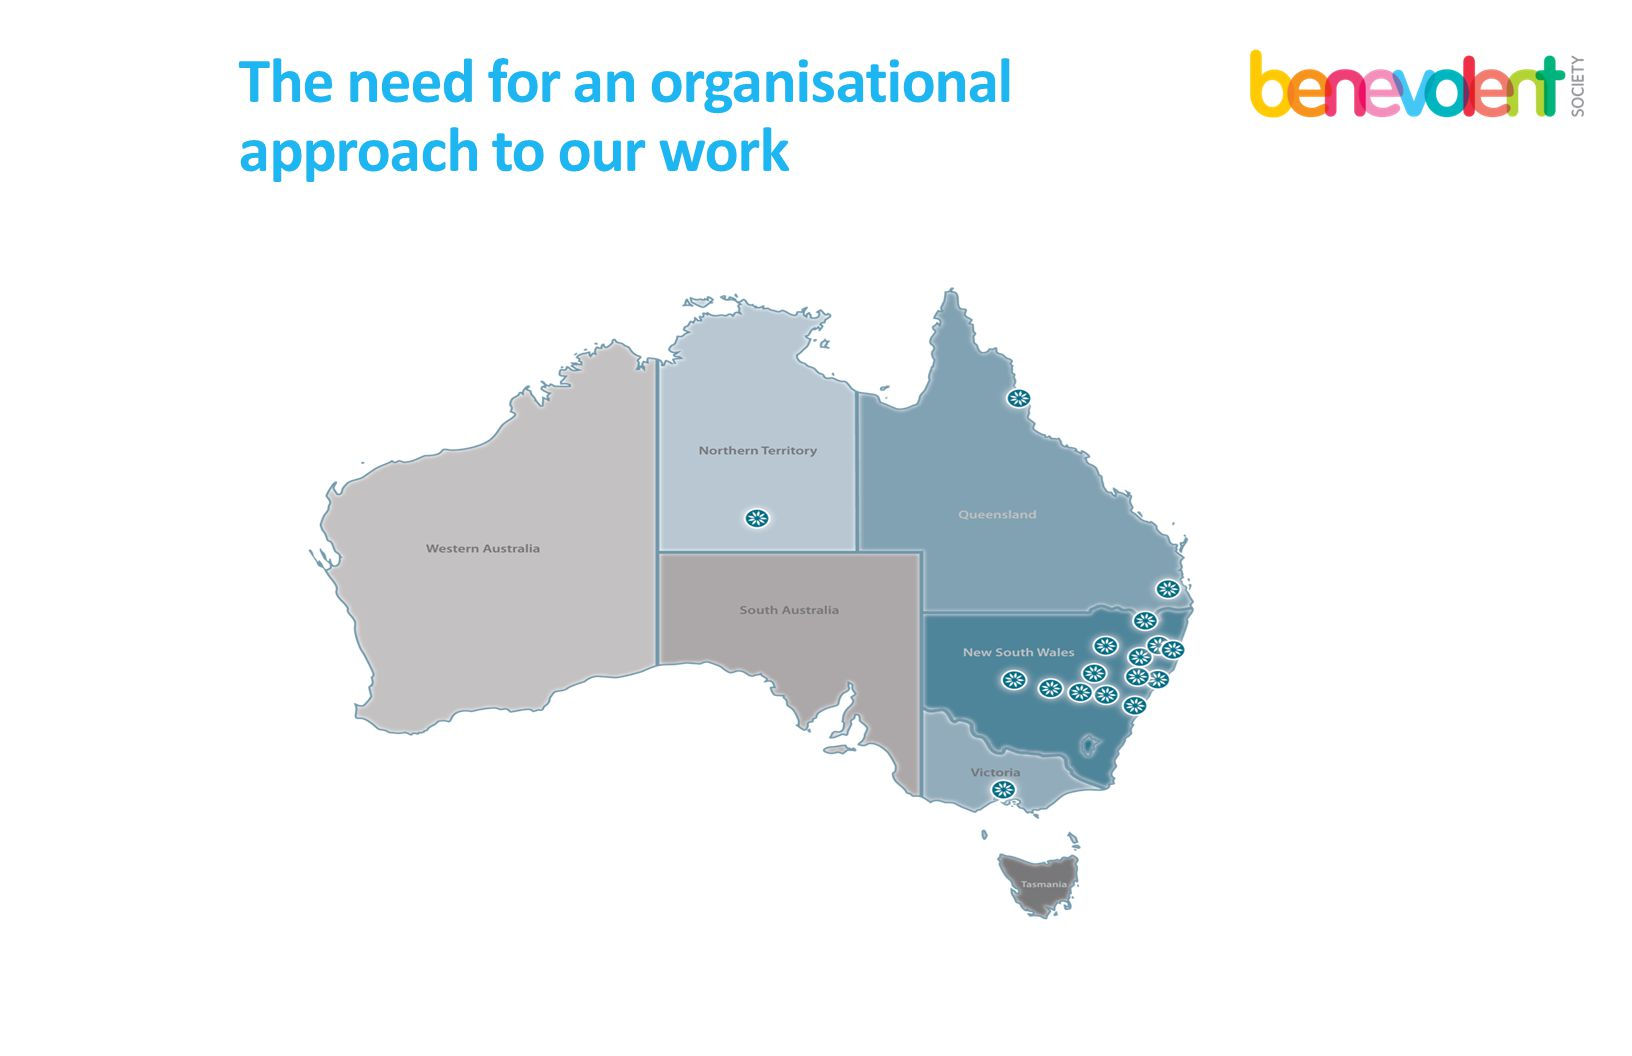 The need for an organisational approach to our work